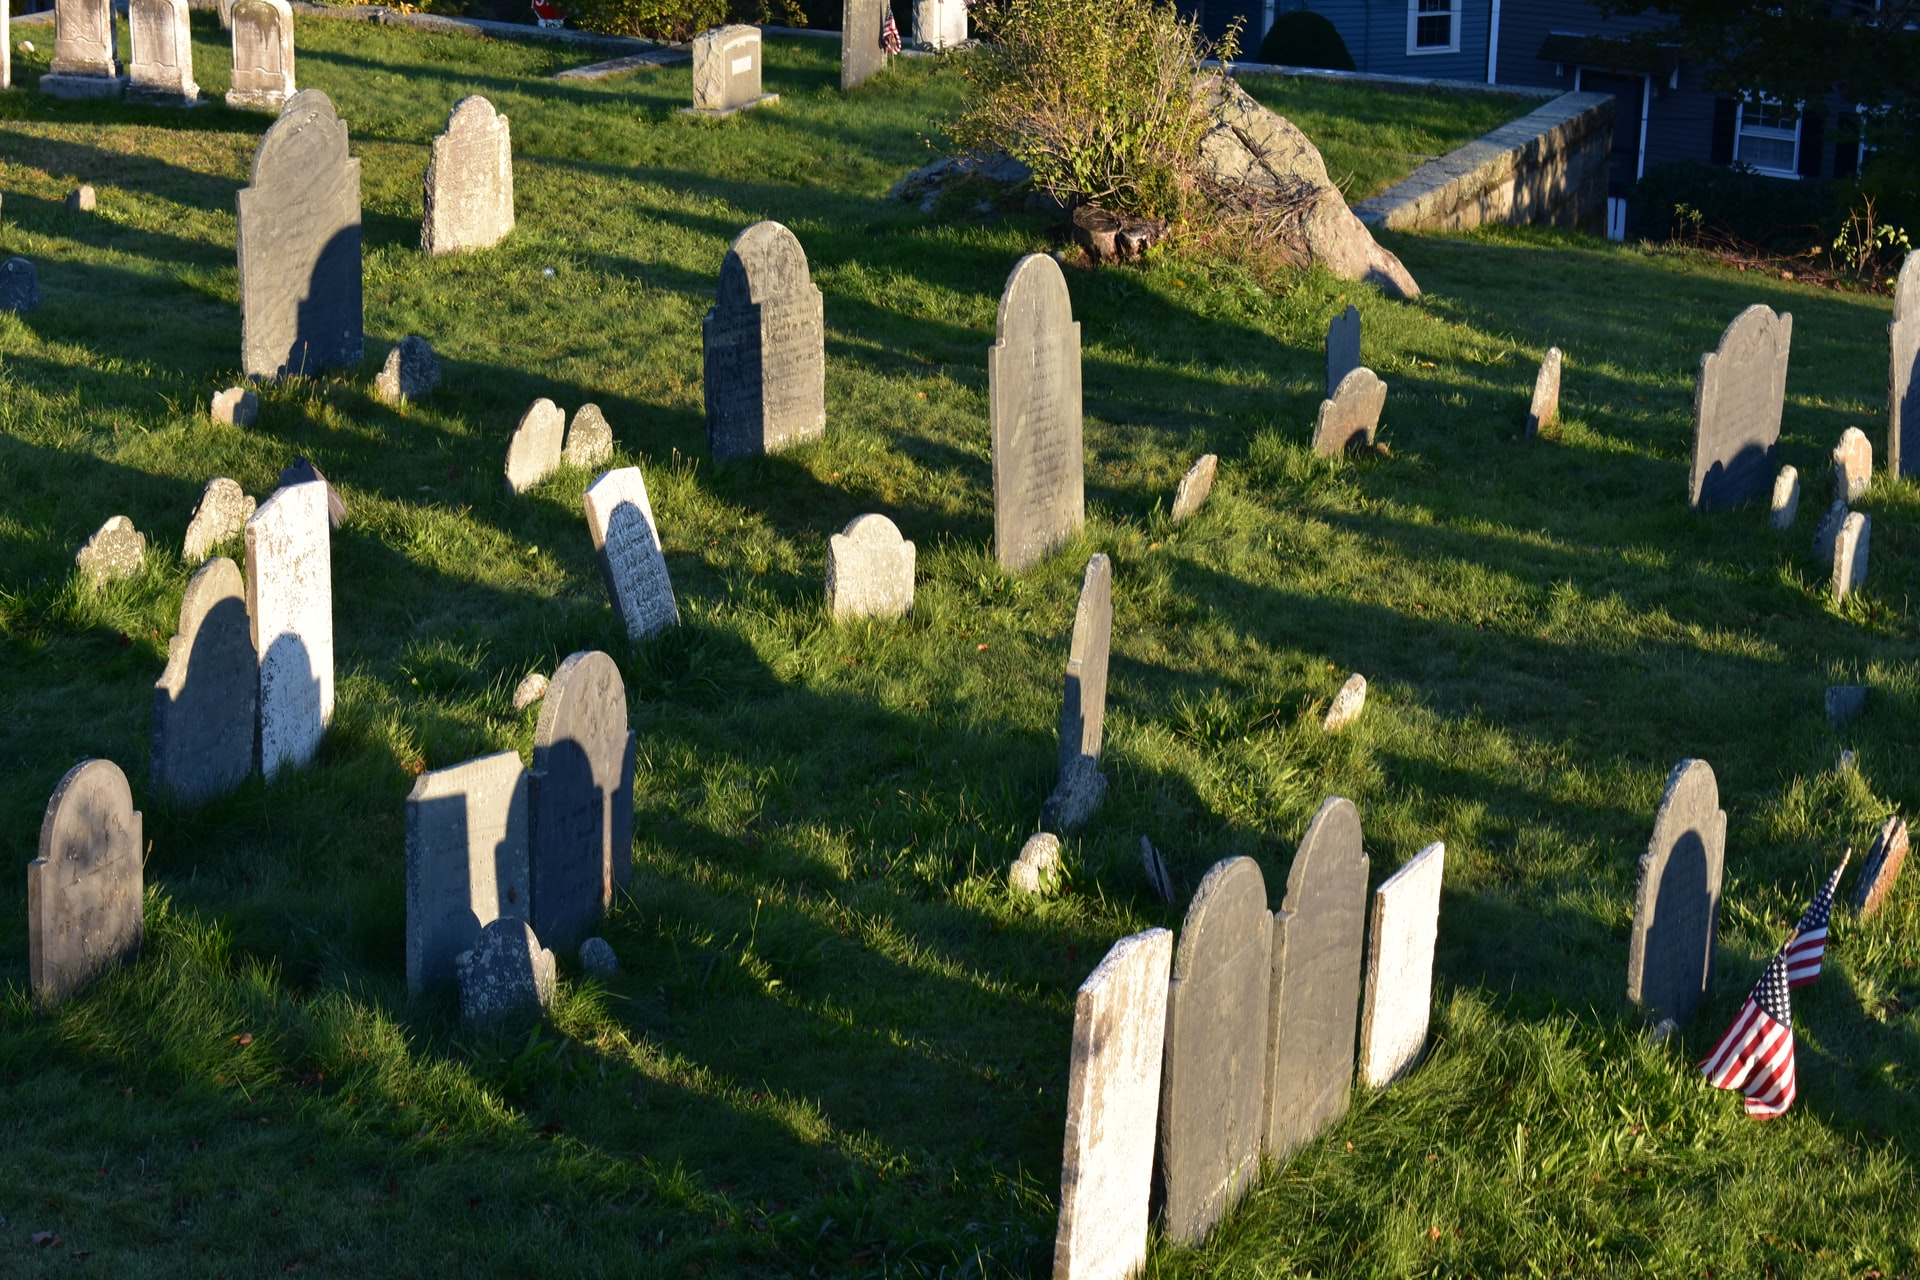 200407 - Old Burial Hill Cemetery, Marblehead, MA, USA by Jessica Simmons licence Unsplash